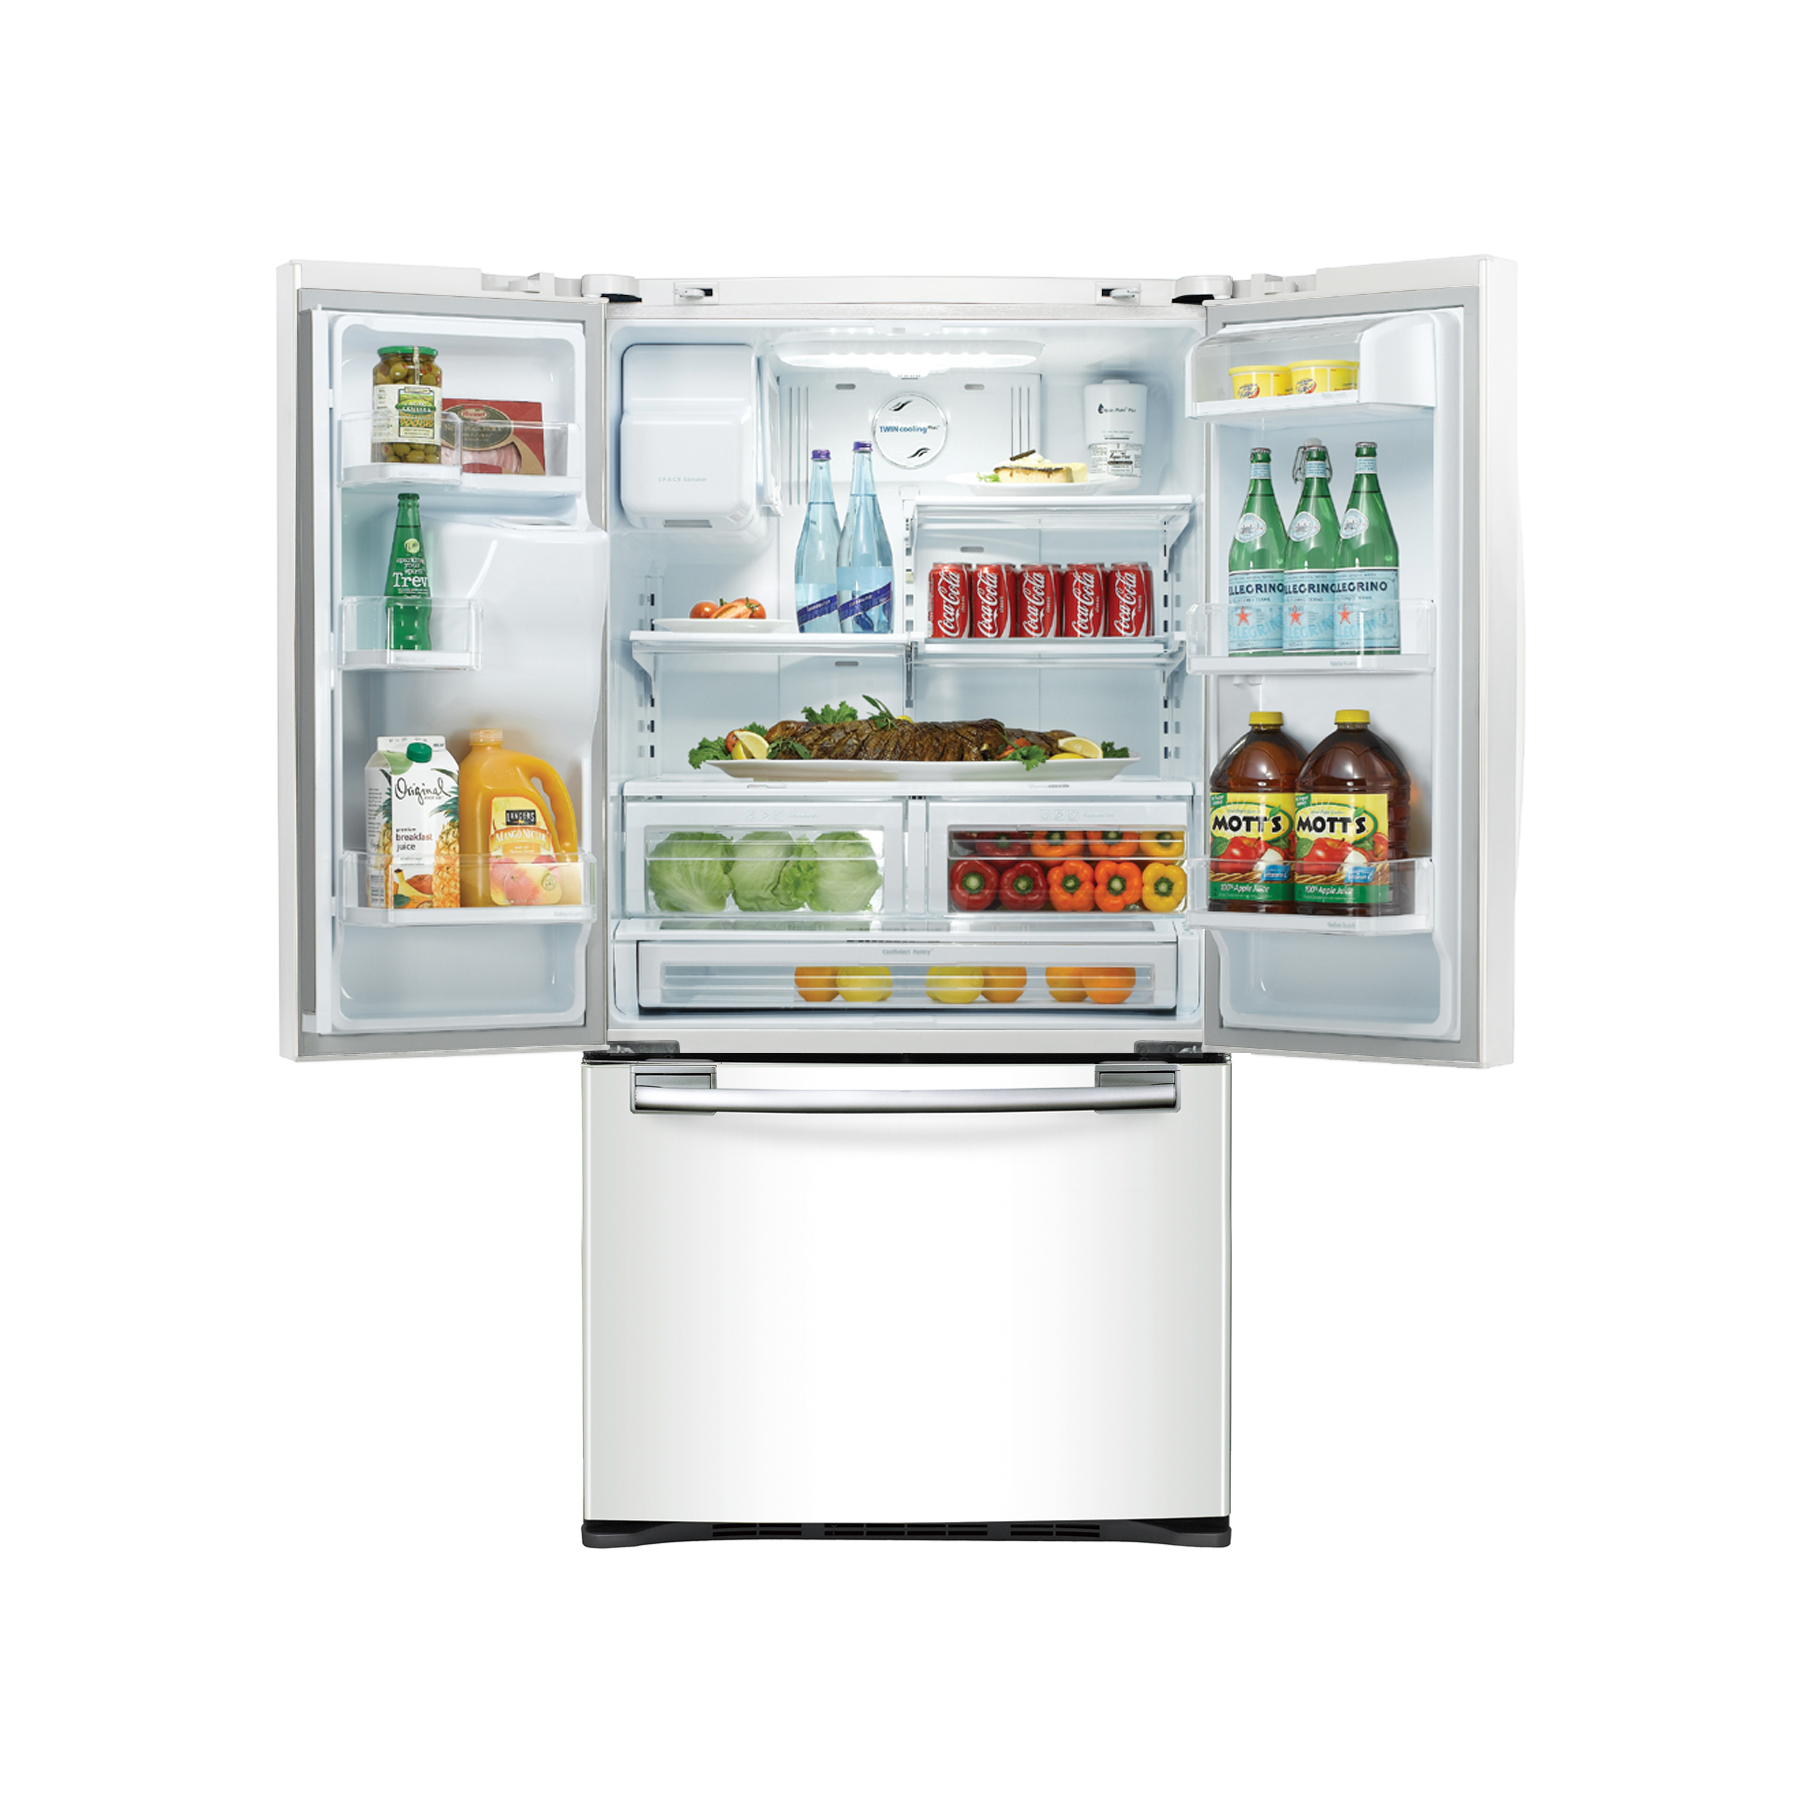 Samsung 29 cu. ft. Bottom-Freezer Refrigerator